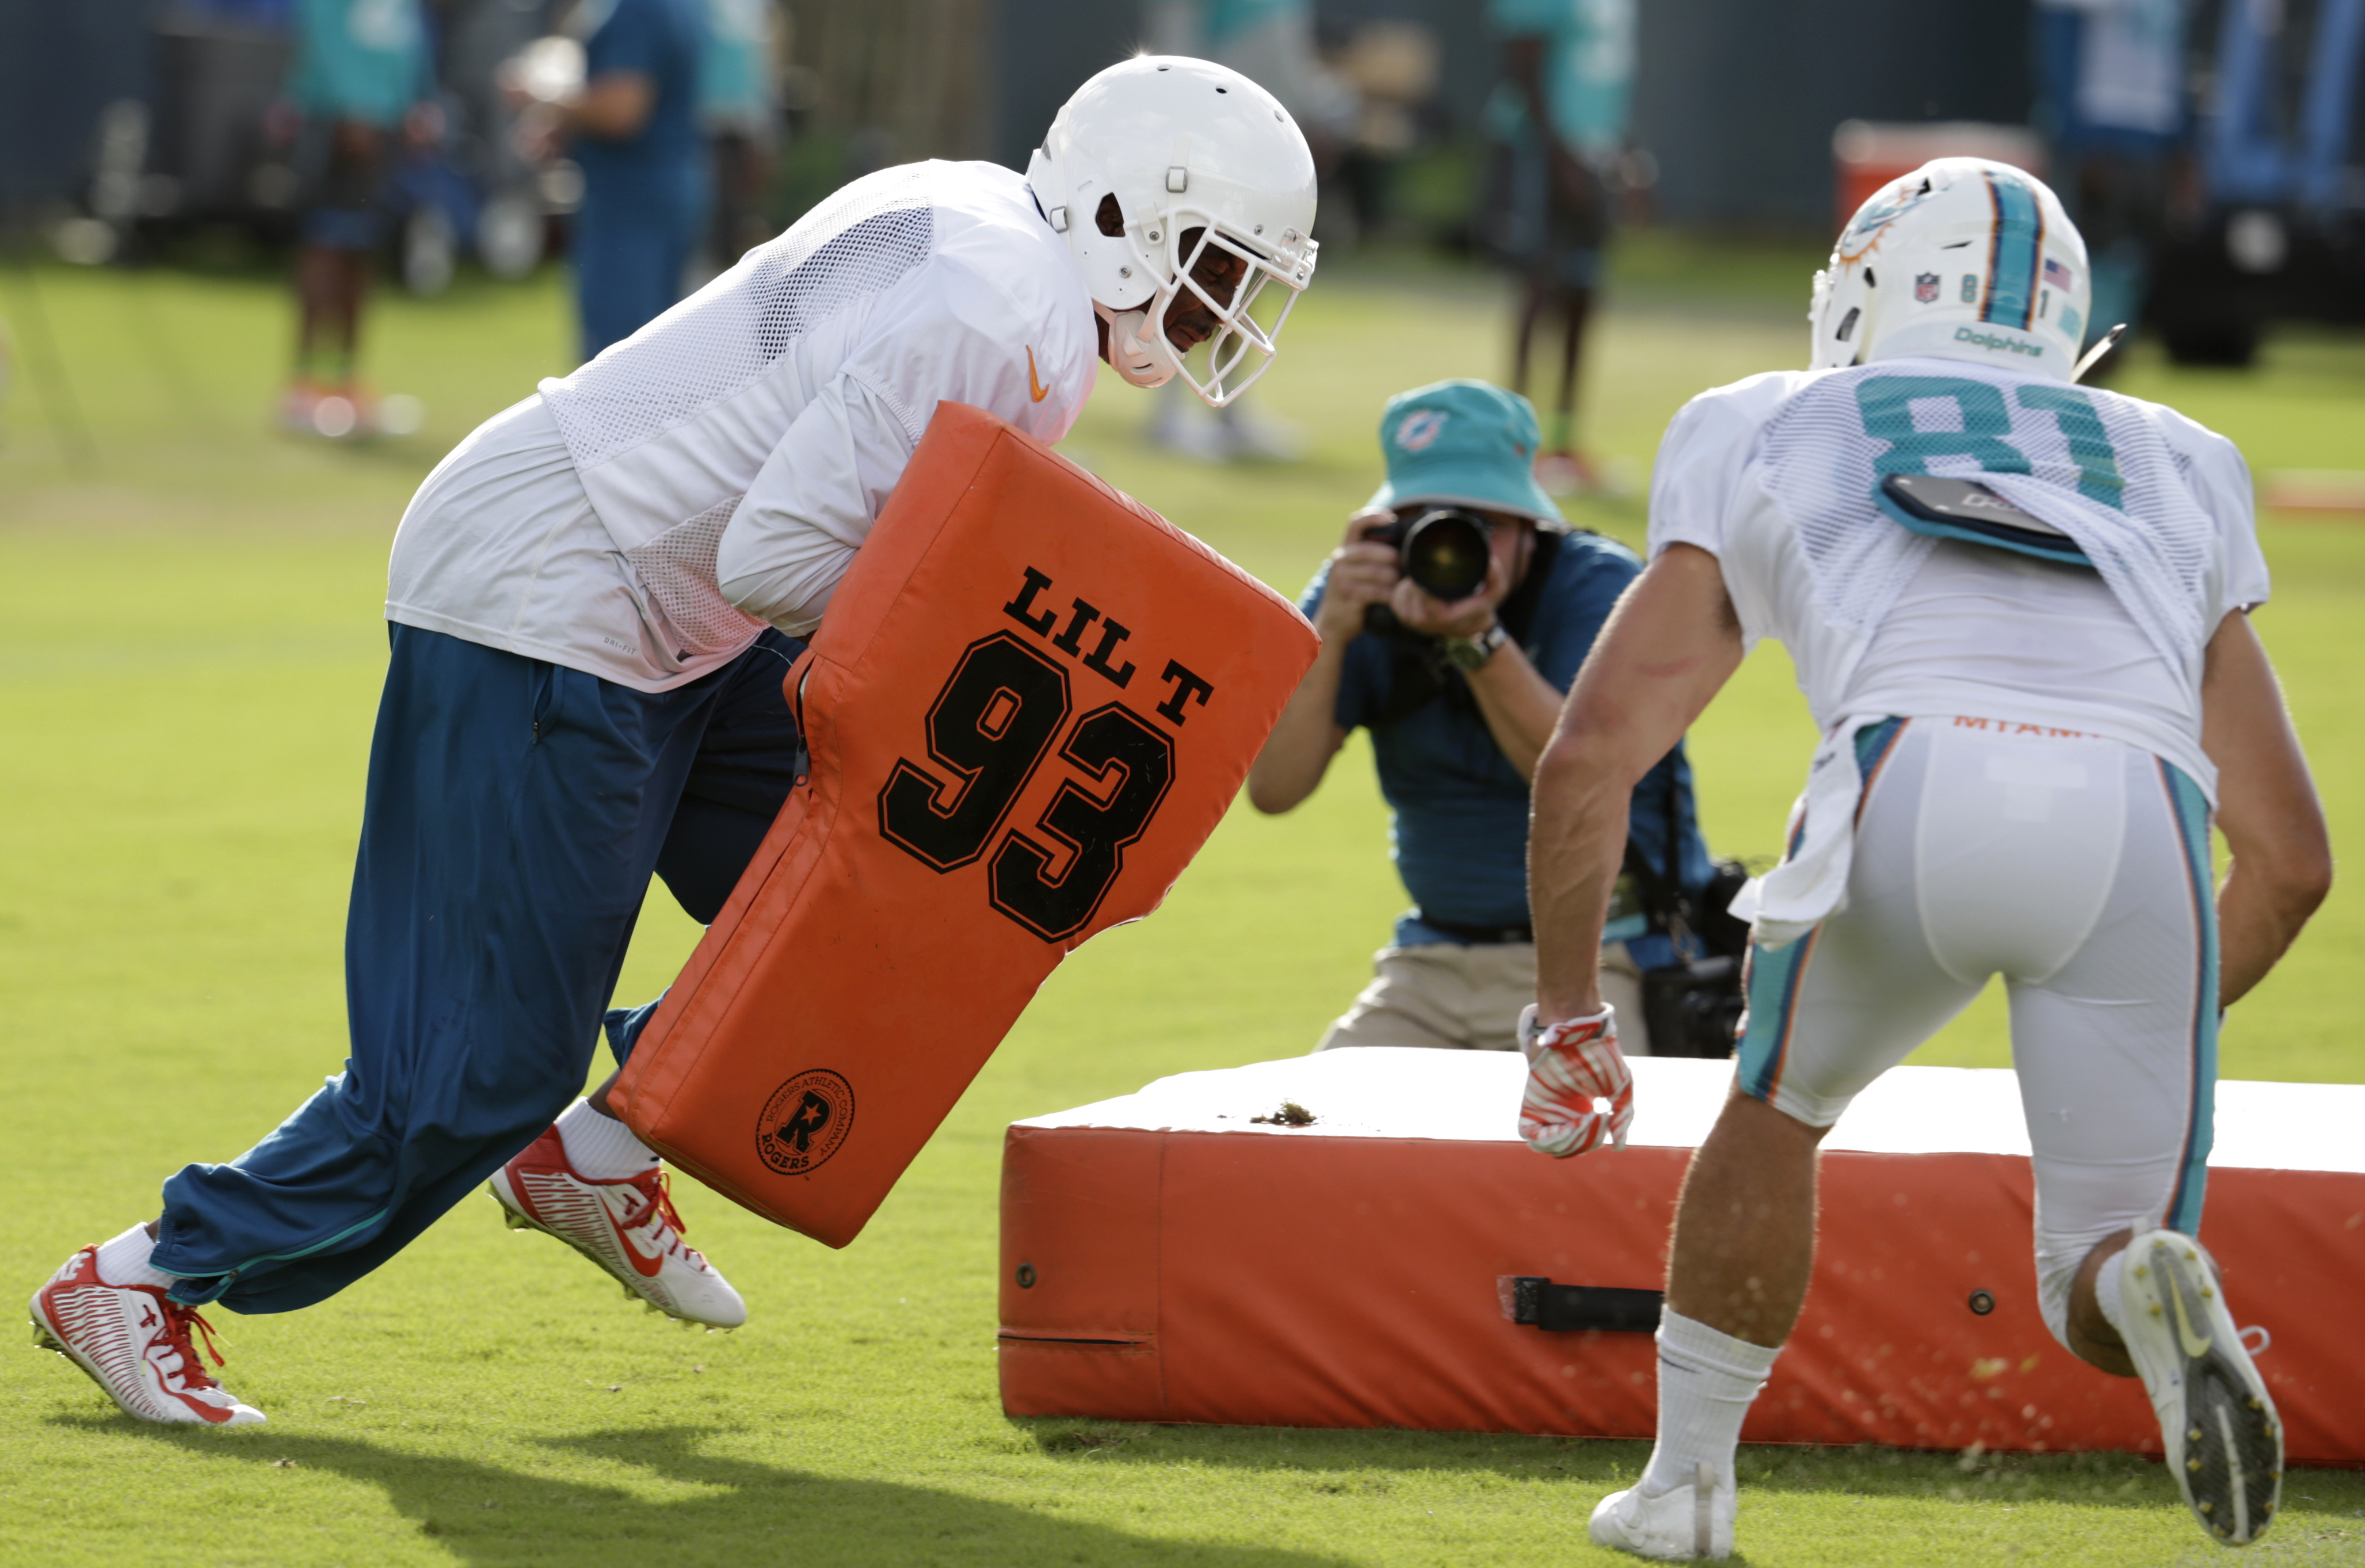 Miami Dolphins wide receivers coach Shawn Jefferson, left, wears pads as he does drills with wide receiver A.J. Cruz (81), Tuesday, Aug. 16, 2016, during practice at NFL football training camp in Davie, Fla. (AP Photo/Lynne Sladky)